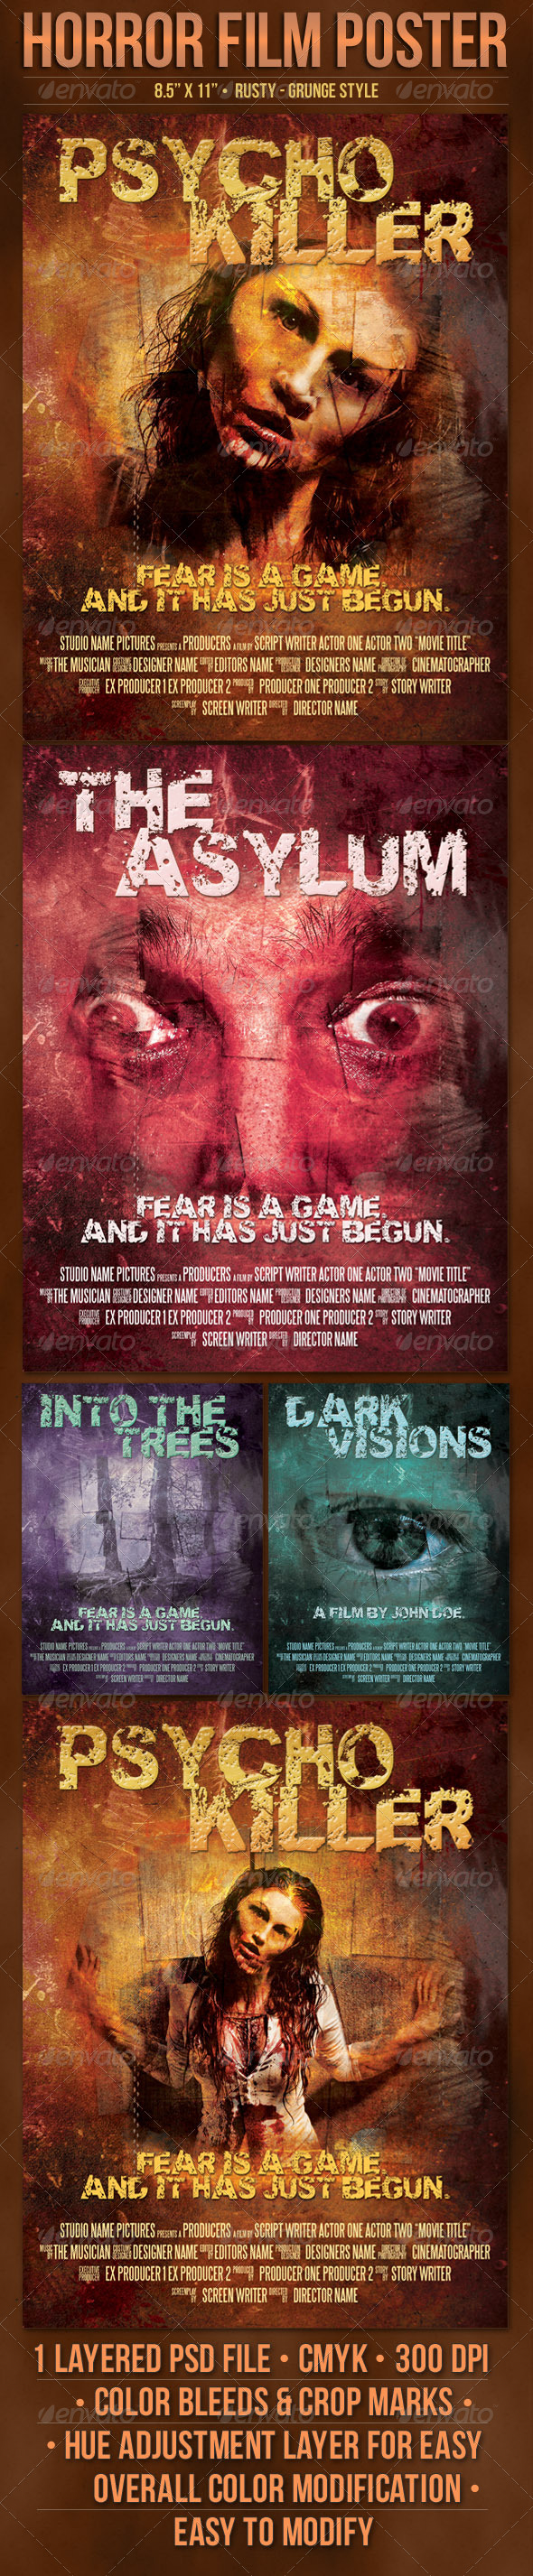 Psycho Horror Film Poster Template - Miscellaneous Events